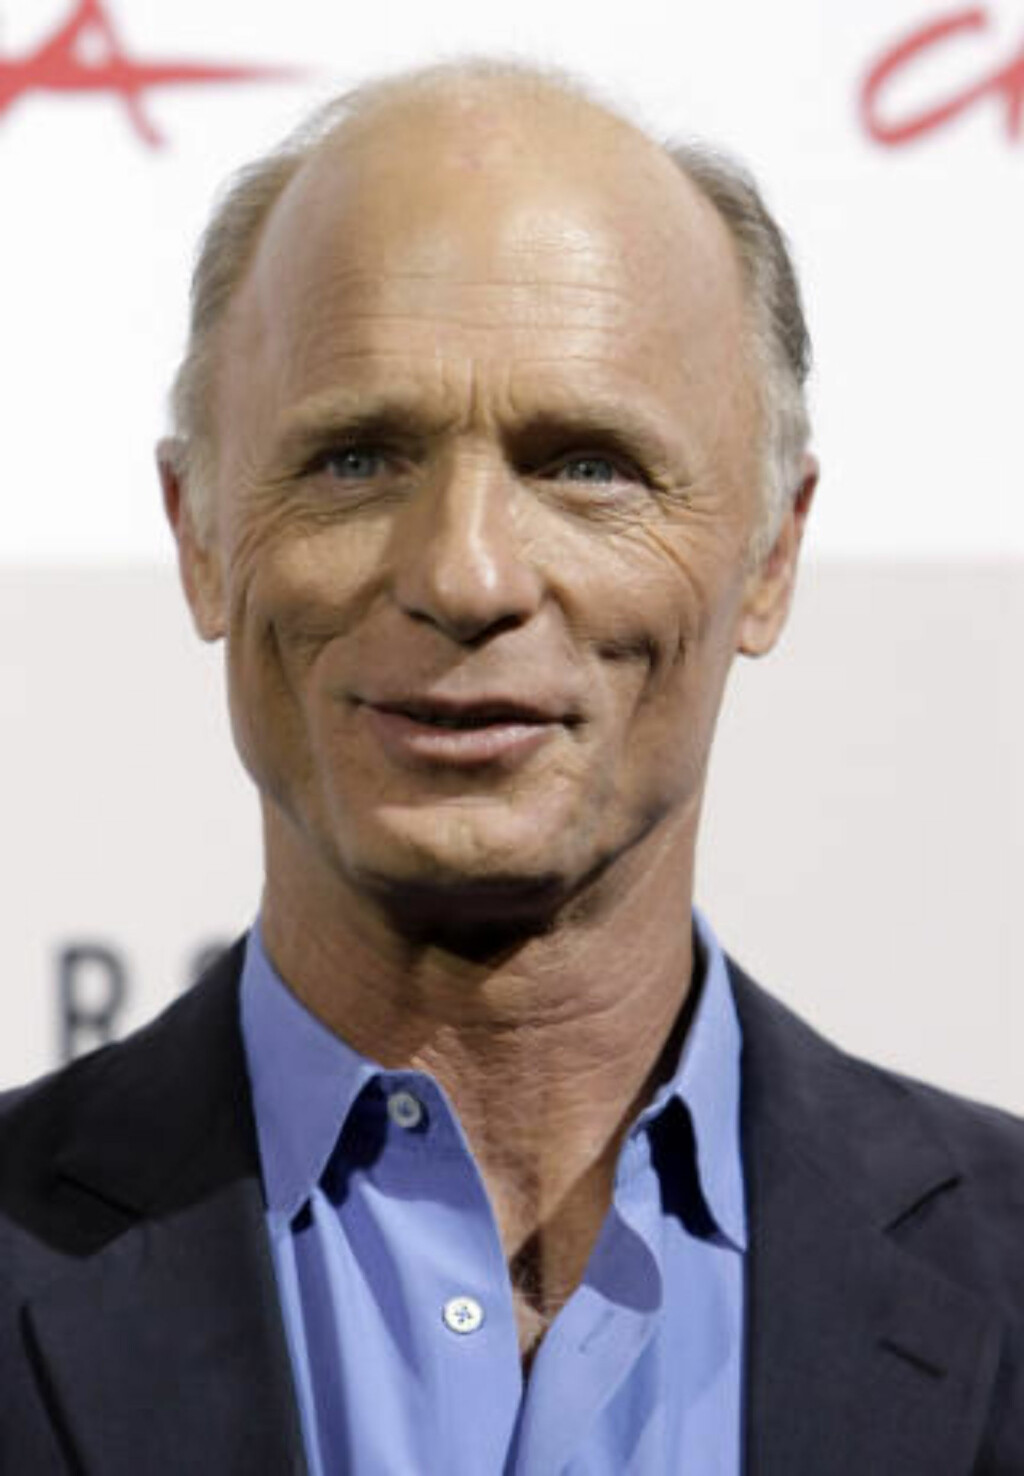 SPILLER I SPILL: Ed Harris. Foto: AP Photo/Andrew Medichini/SCANPIX